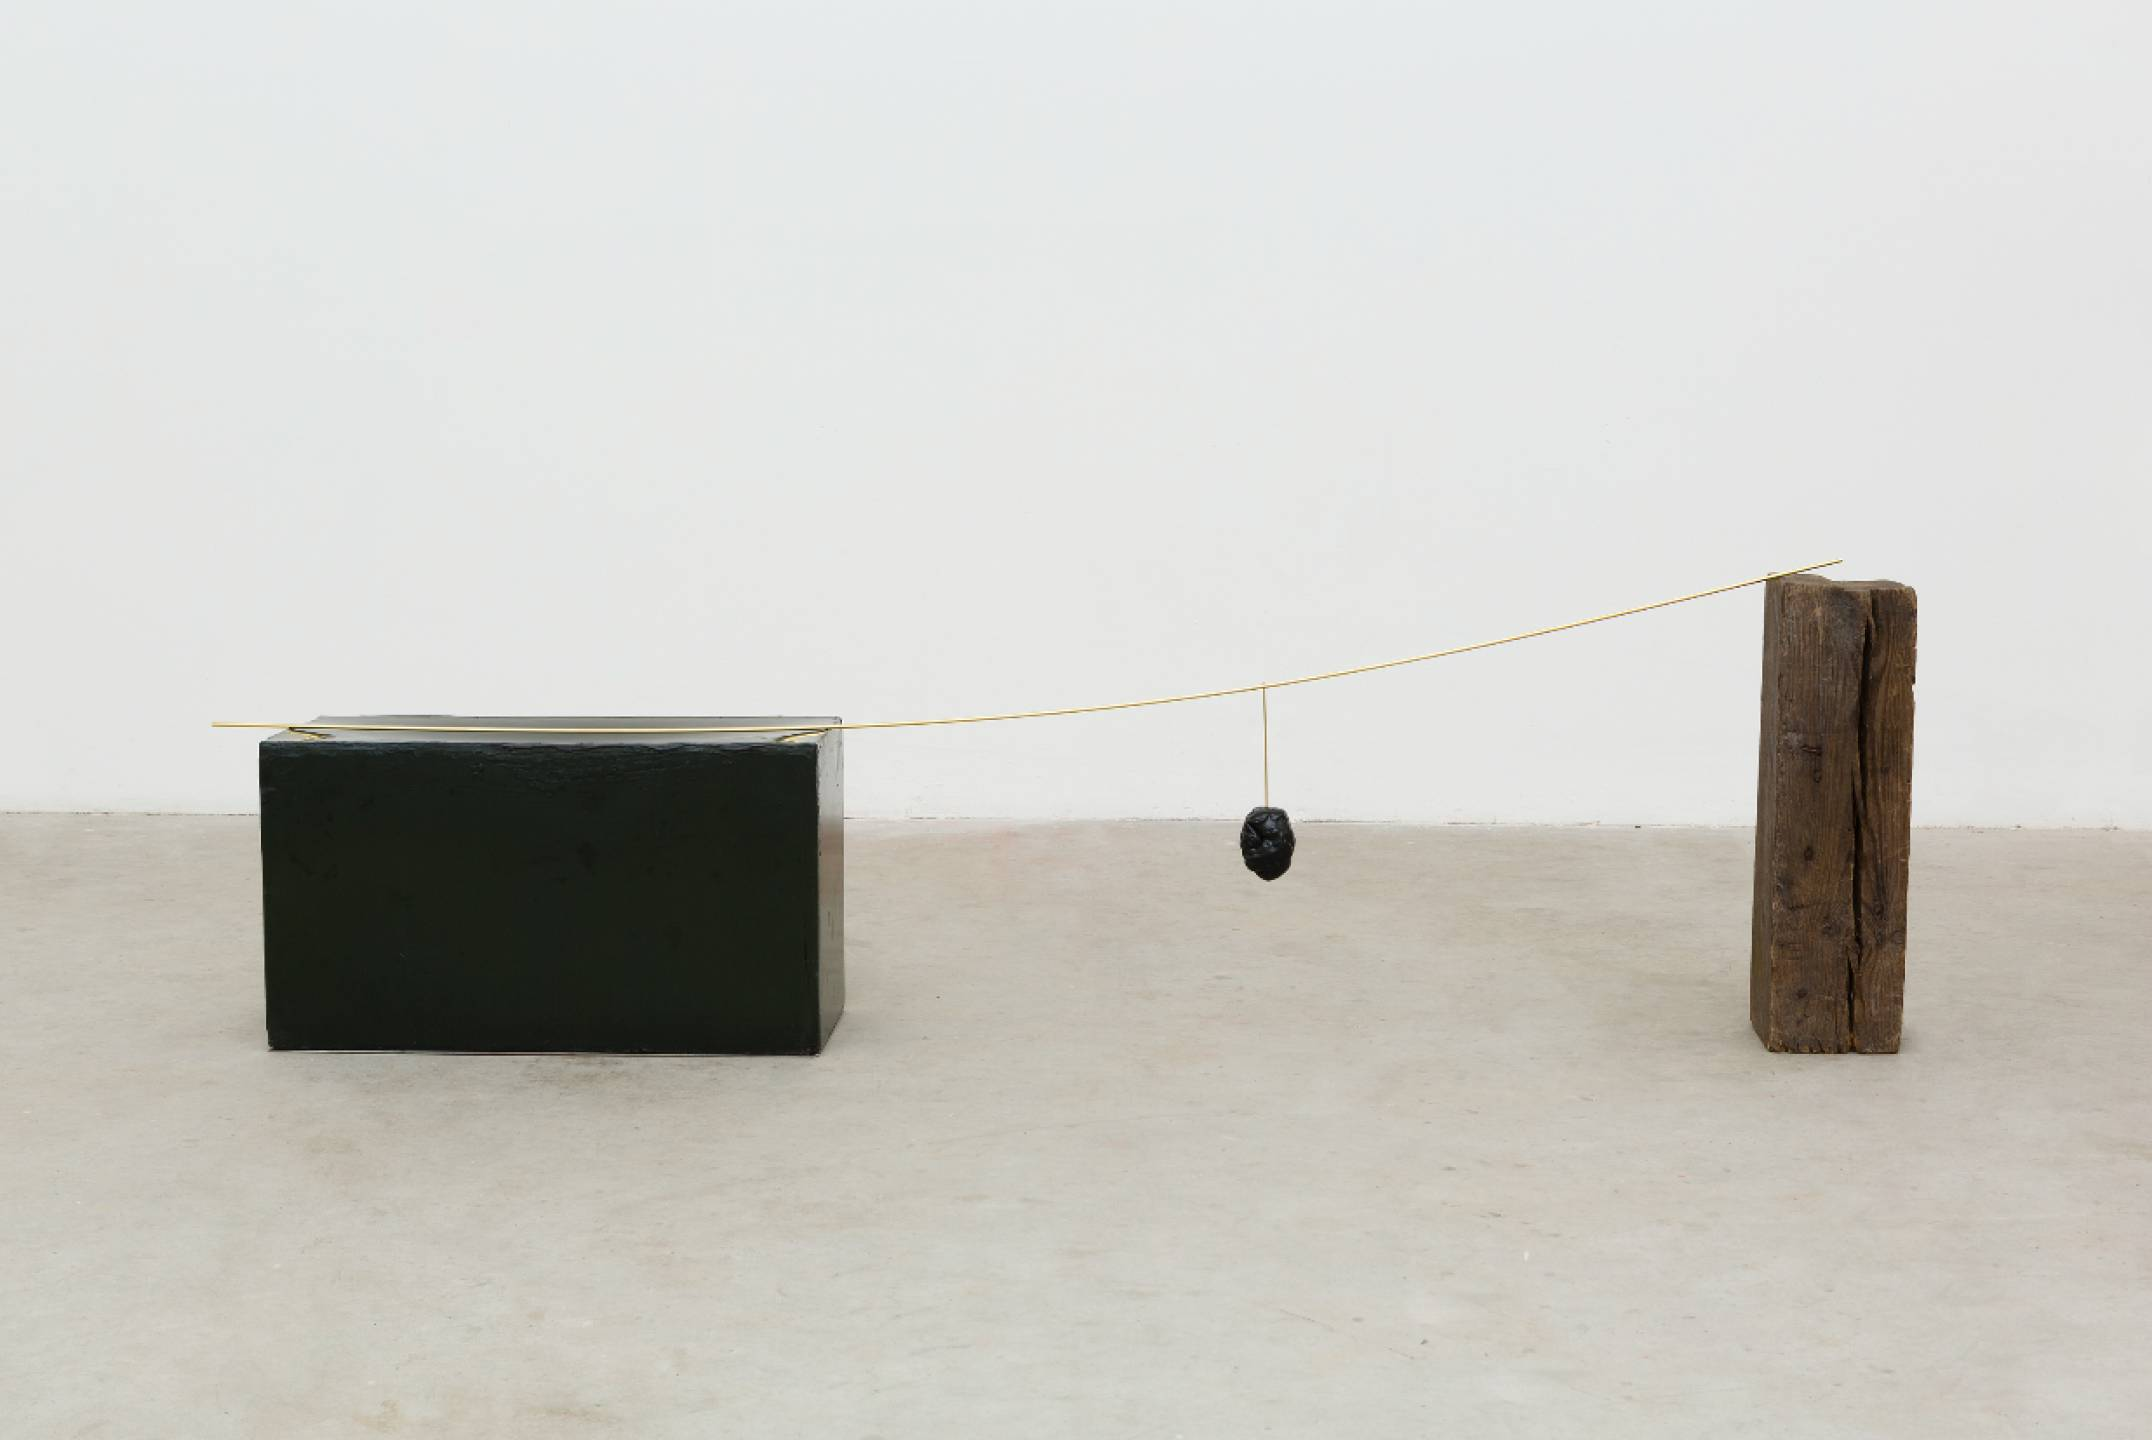 Paloma Bosquê, <em>Ponte pênsil,</em> 2017, brass stem with beeswax stone with pitch and wood block, 49,5 × 182 × 24 cm - Mendes Wood DM